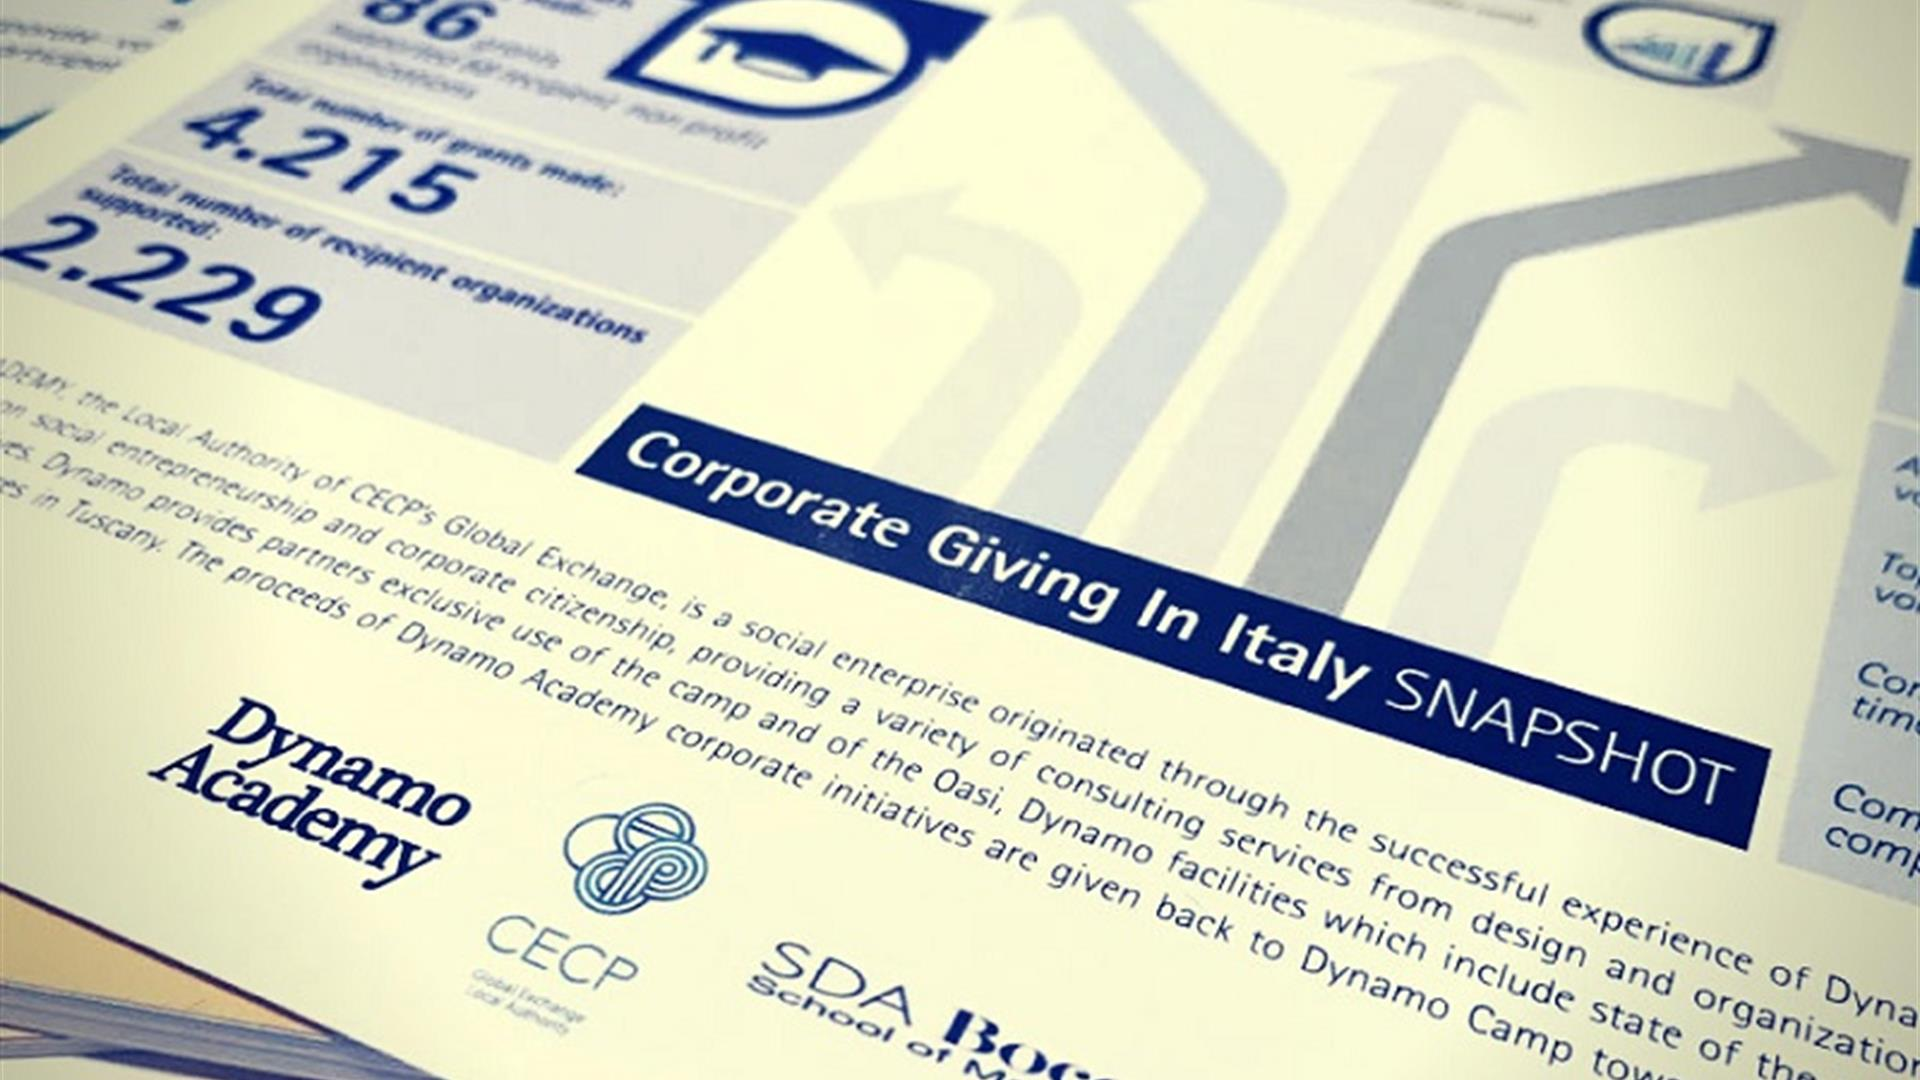 Corporate Giving In Italy 2018